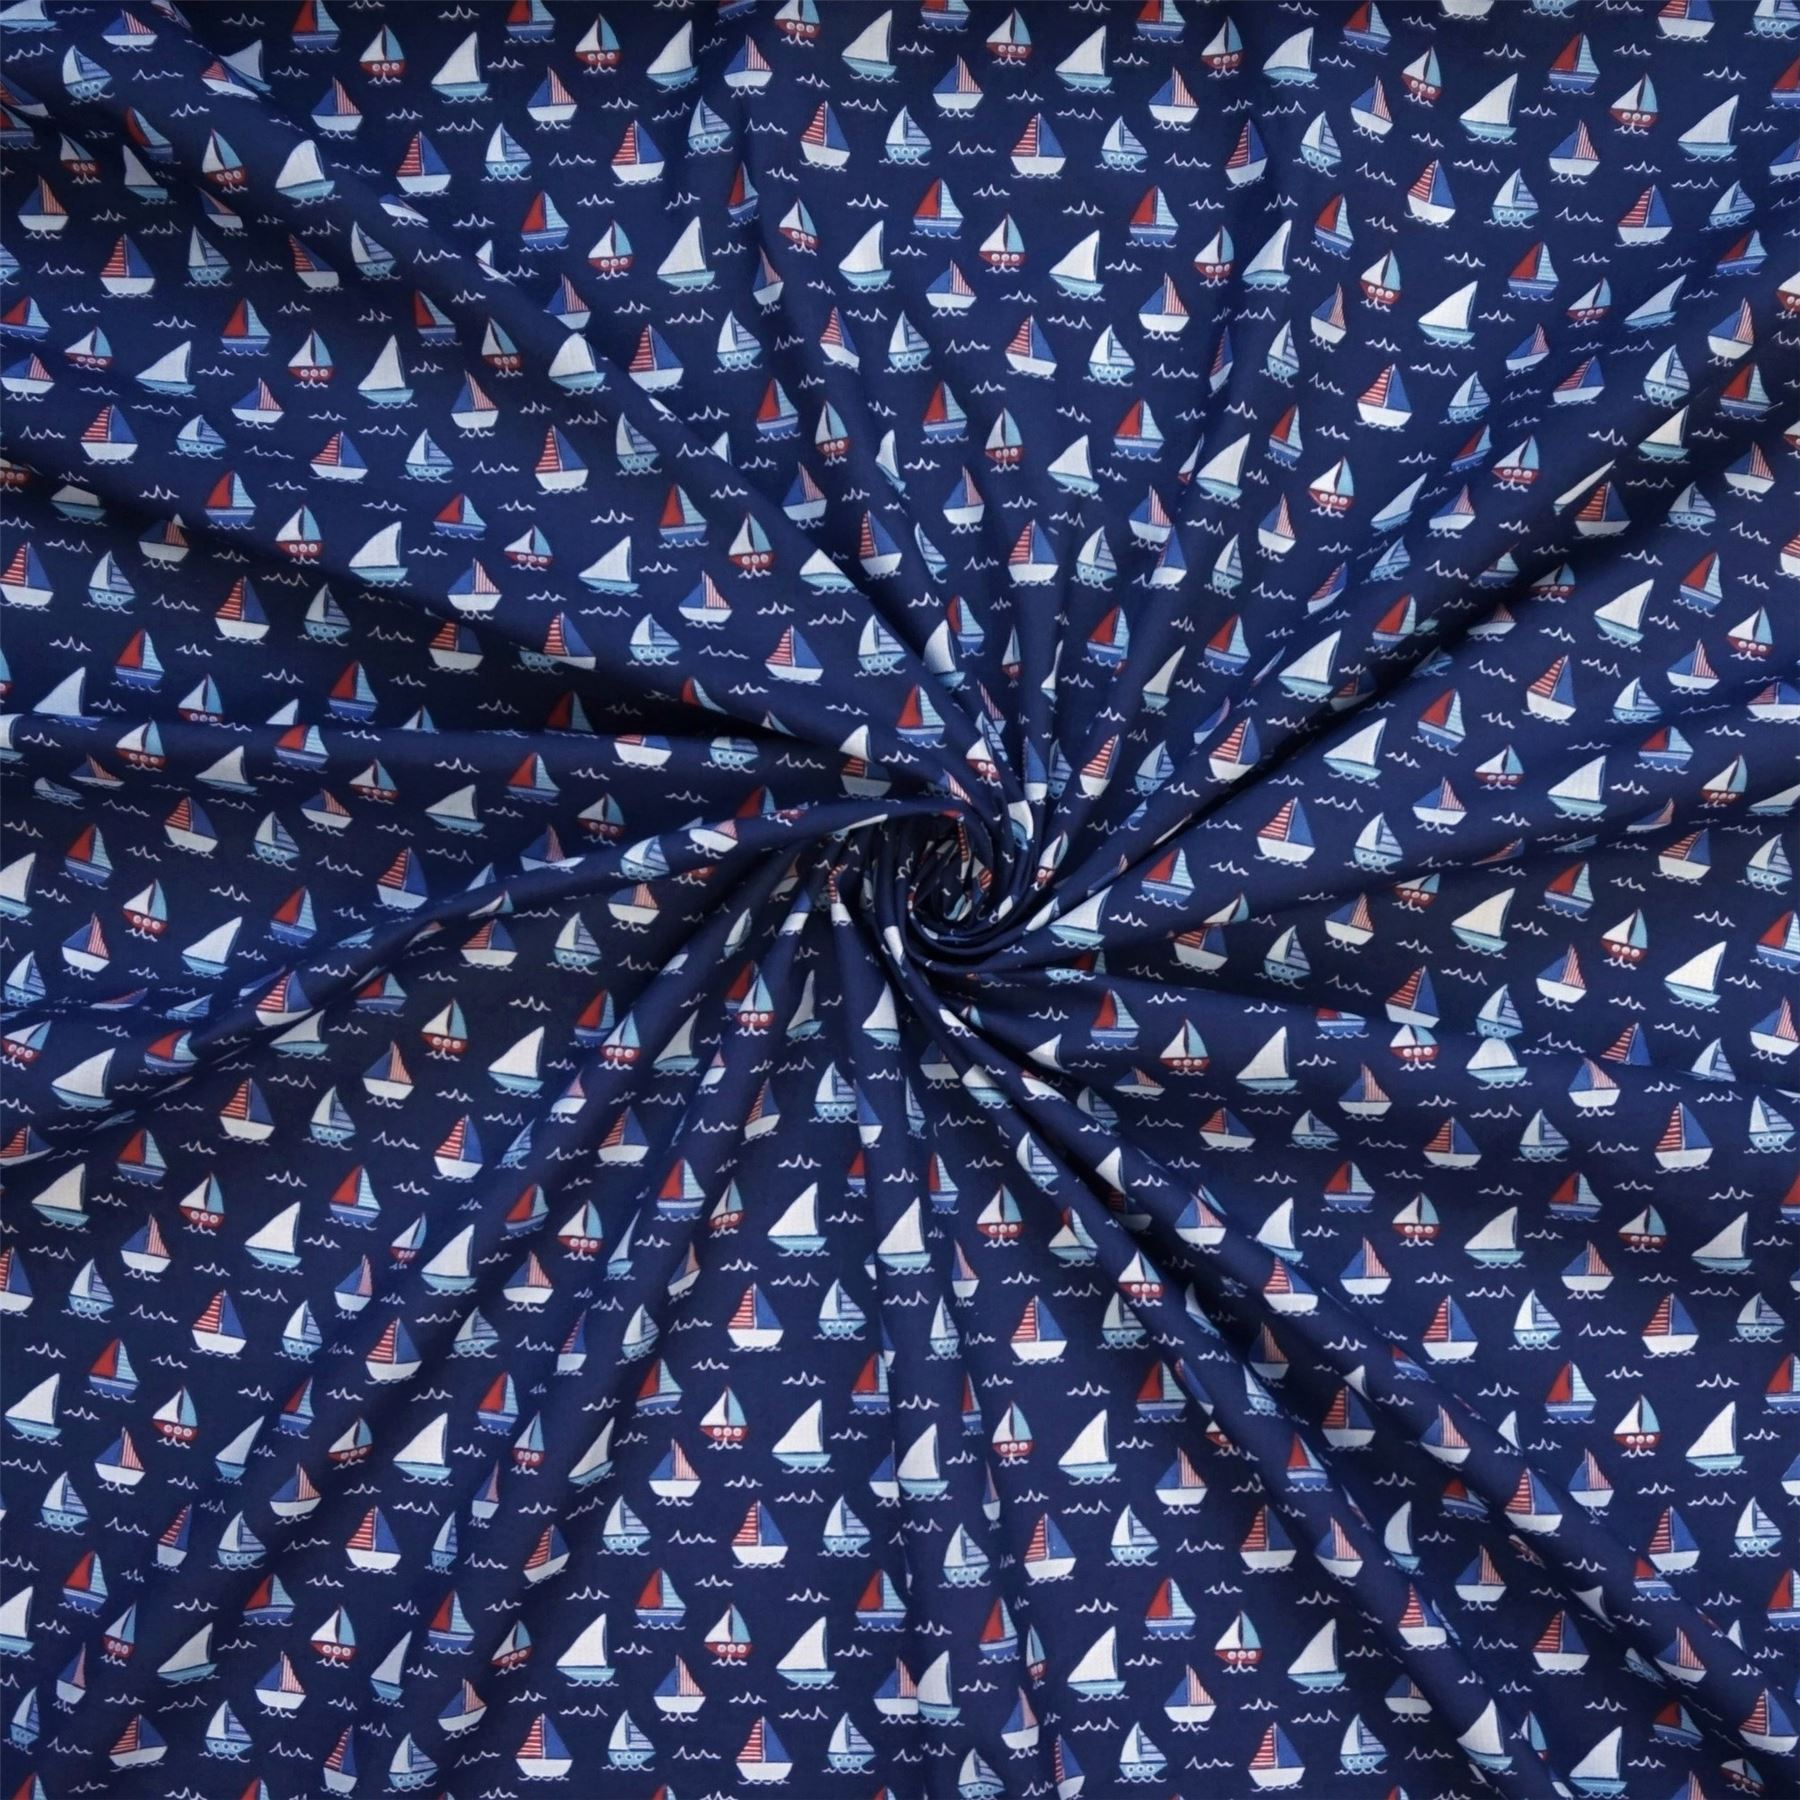 Per Metre 2 Cols Blue Polycotton Fabric with Nautical Sailing Boats /& Waves